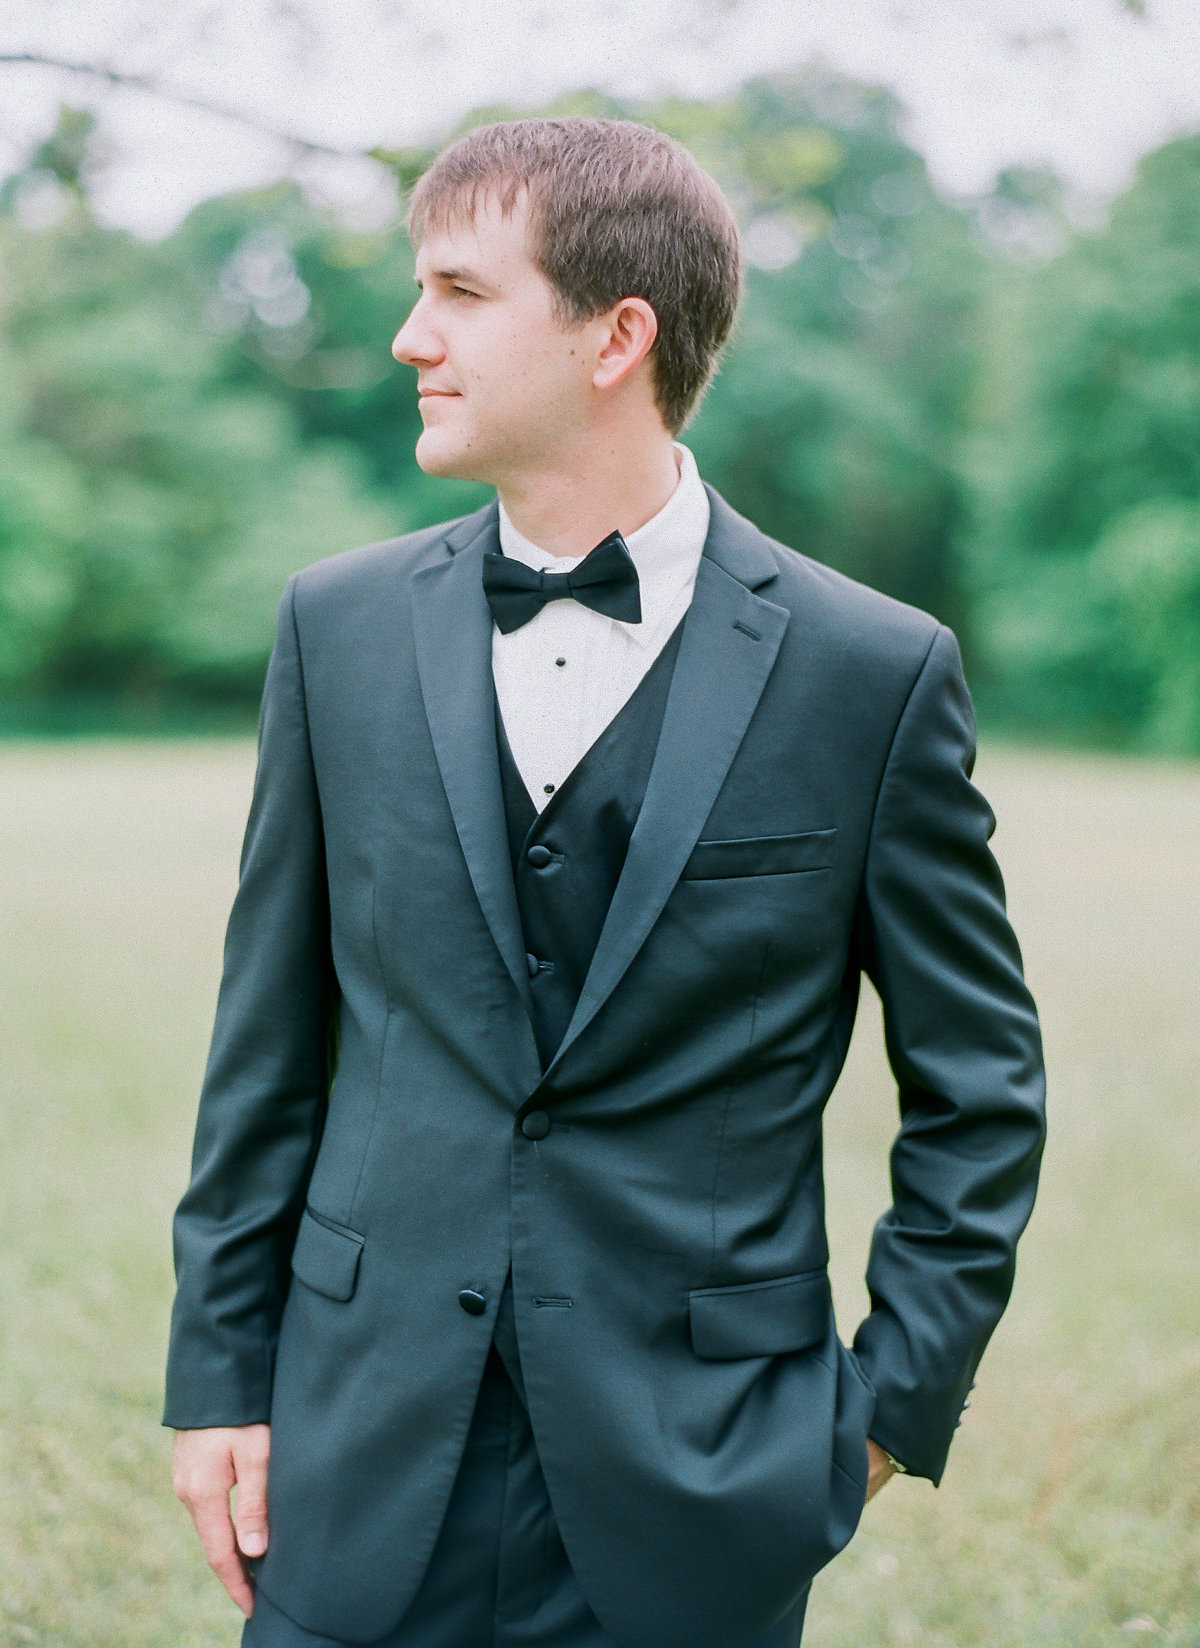 Victoria Austin Designs Wedding | Jennifer Blair Photography | Kaylie + Cory